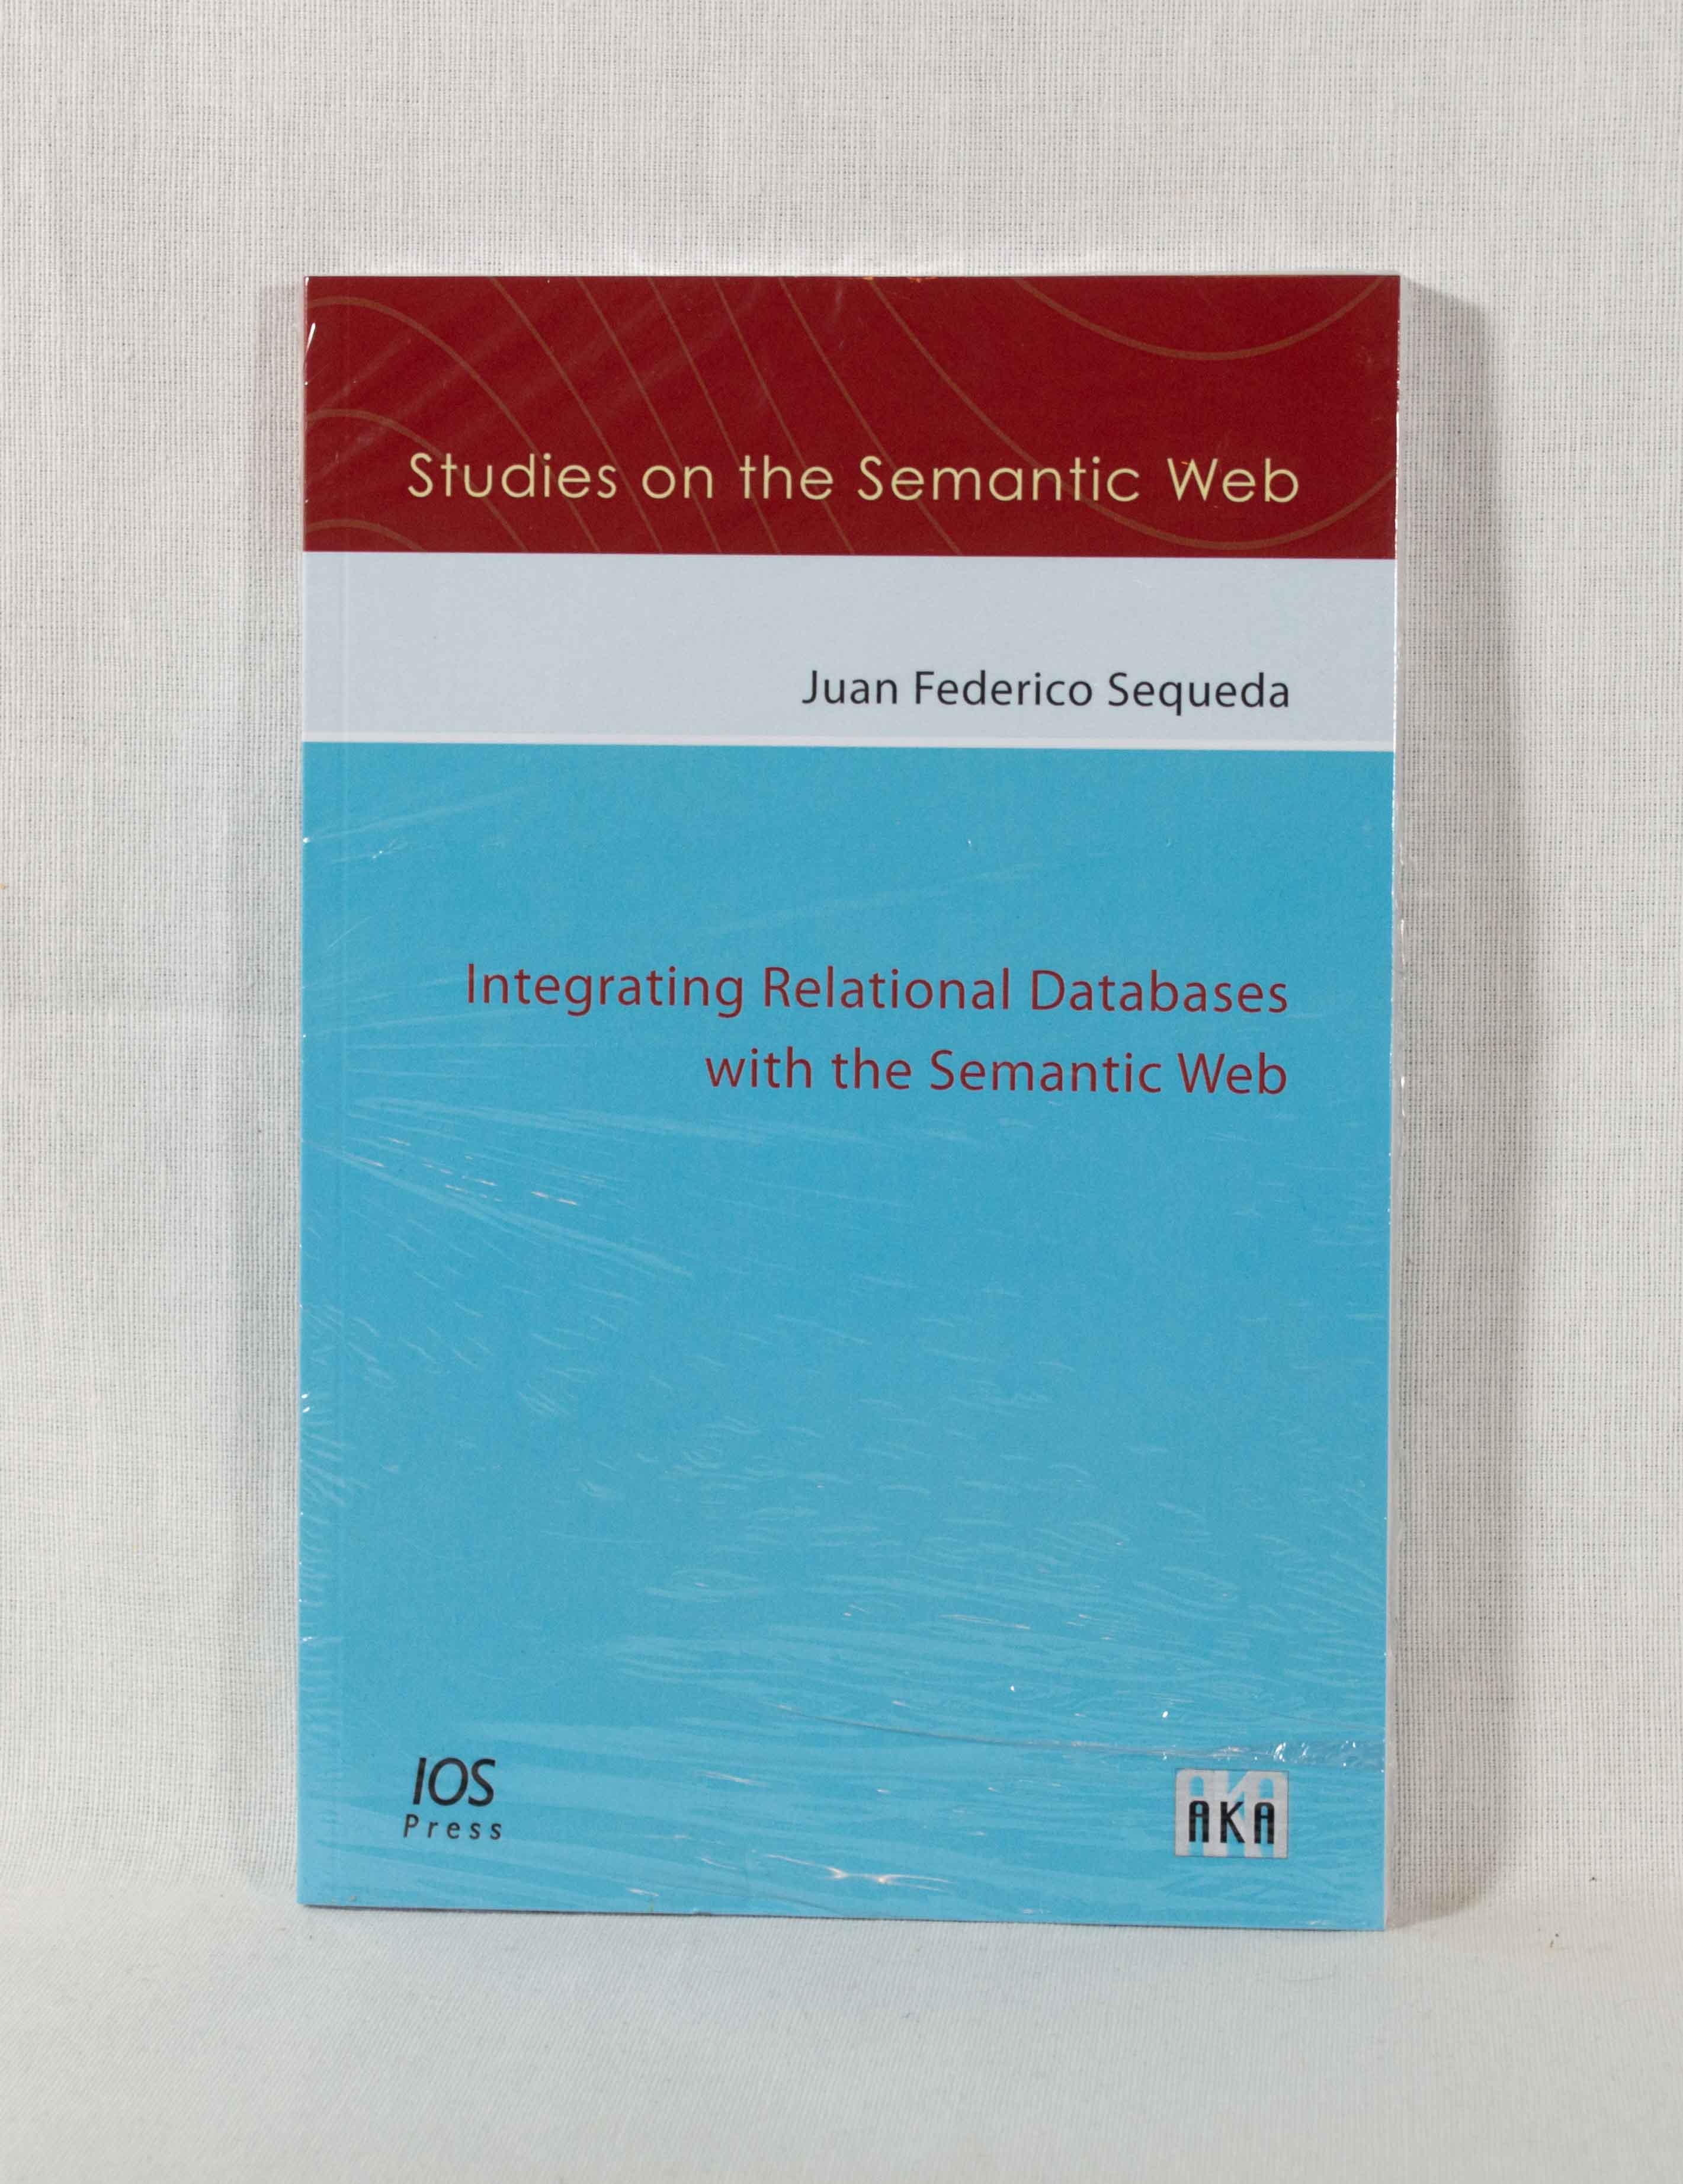 Integrating Relational Databases with the Semantic Web. (= Studies on the Semantic Web, Vol. 022).